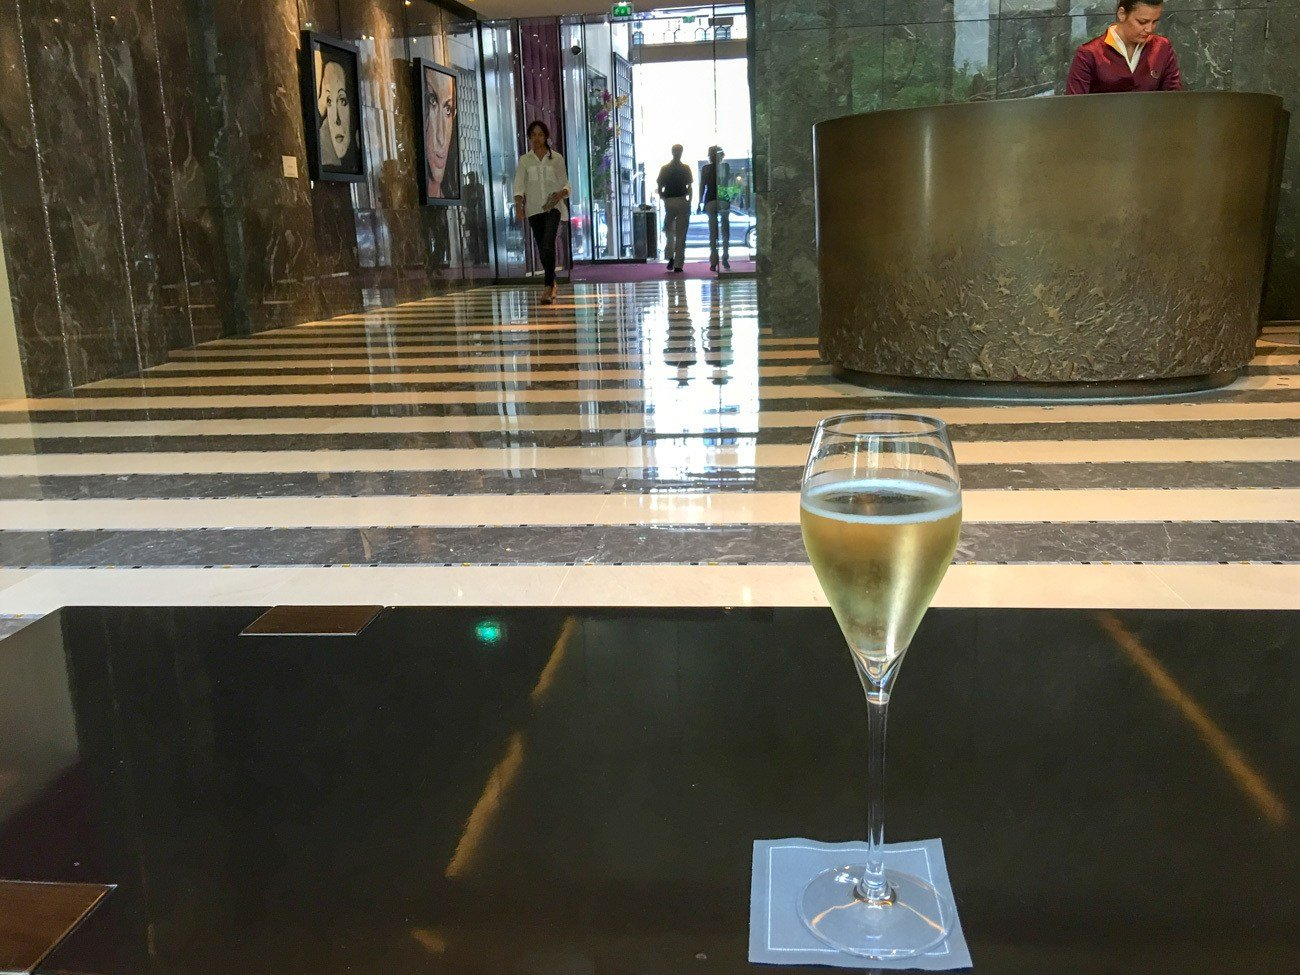 A welcome glass of champagne at the Mandarin Oriental hotel in Paris. Definitely one of the city's best luxury hotels.